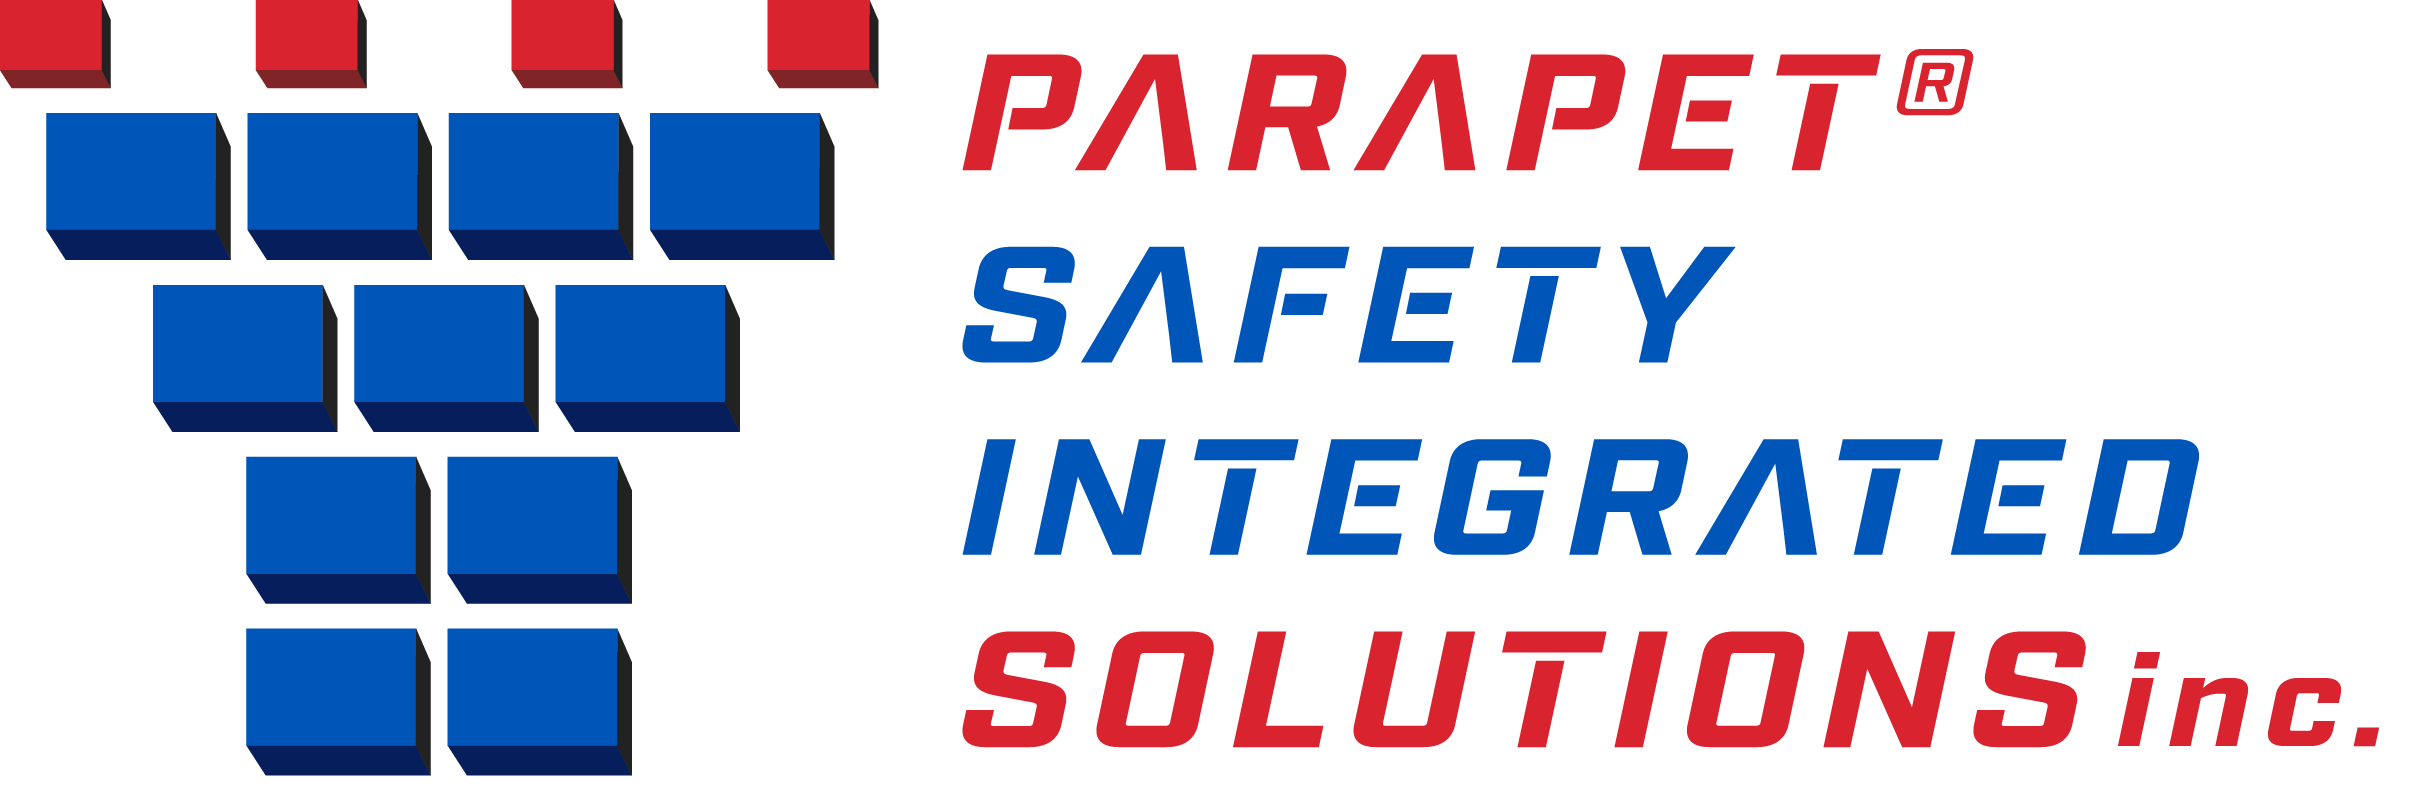 Parapet Safety Integrated Solutions